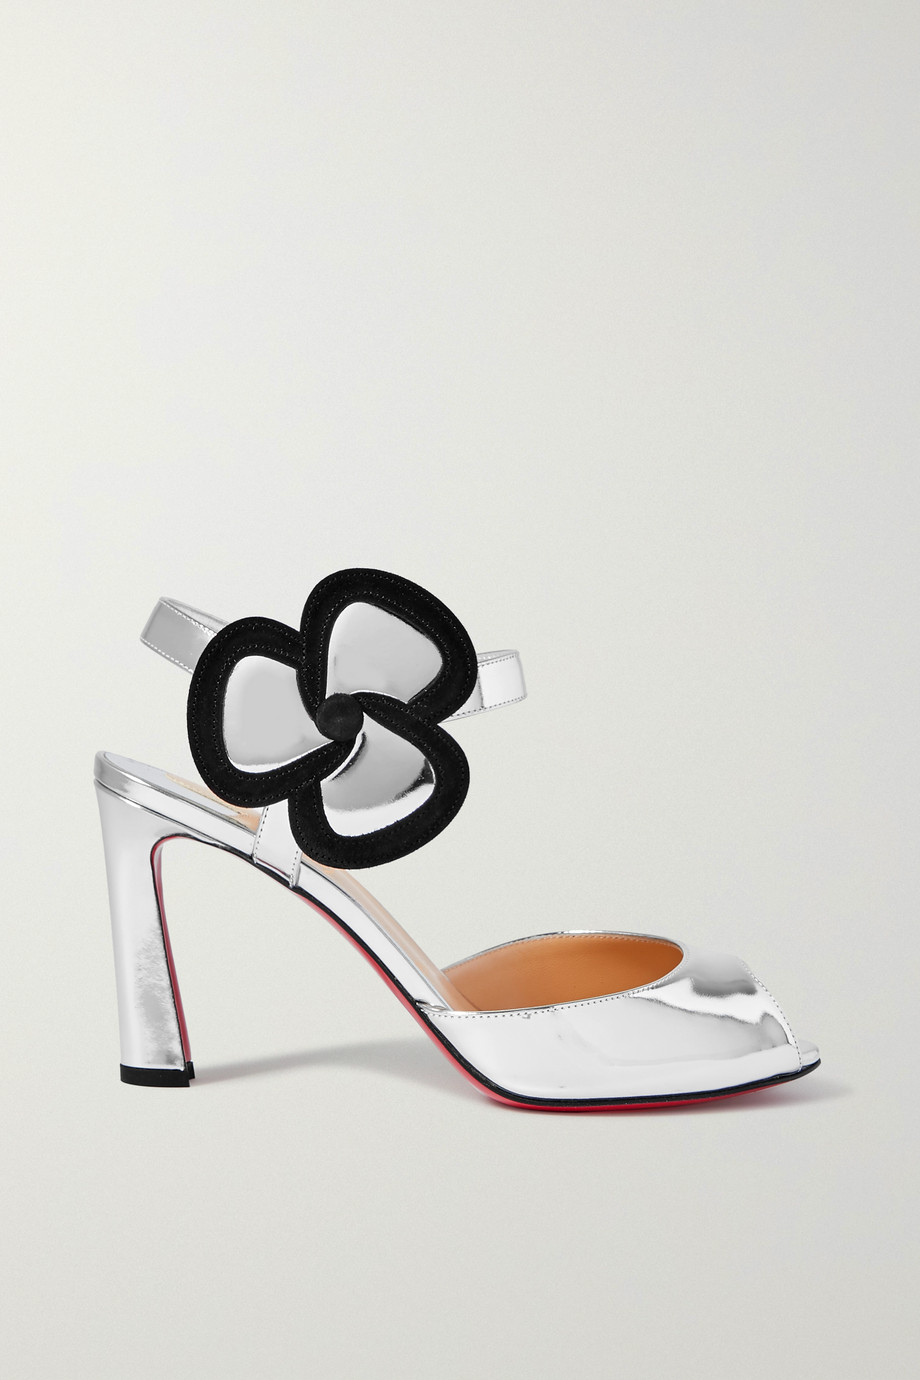 Christian Louboutin Pansy 85 suede-trimmed metallic leather sandals